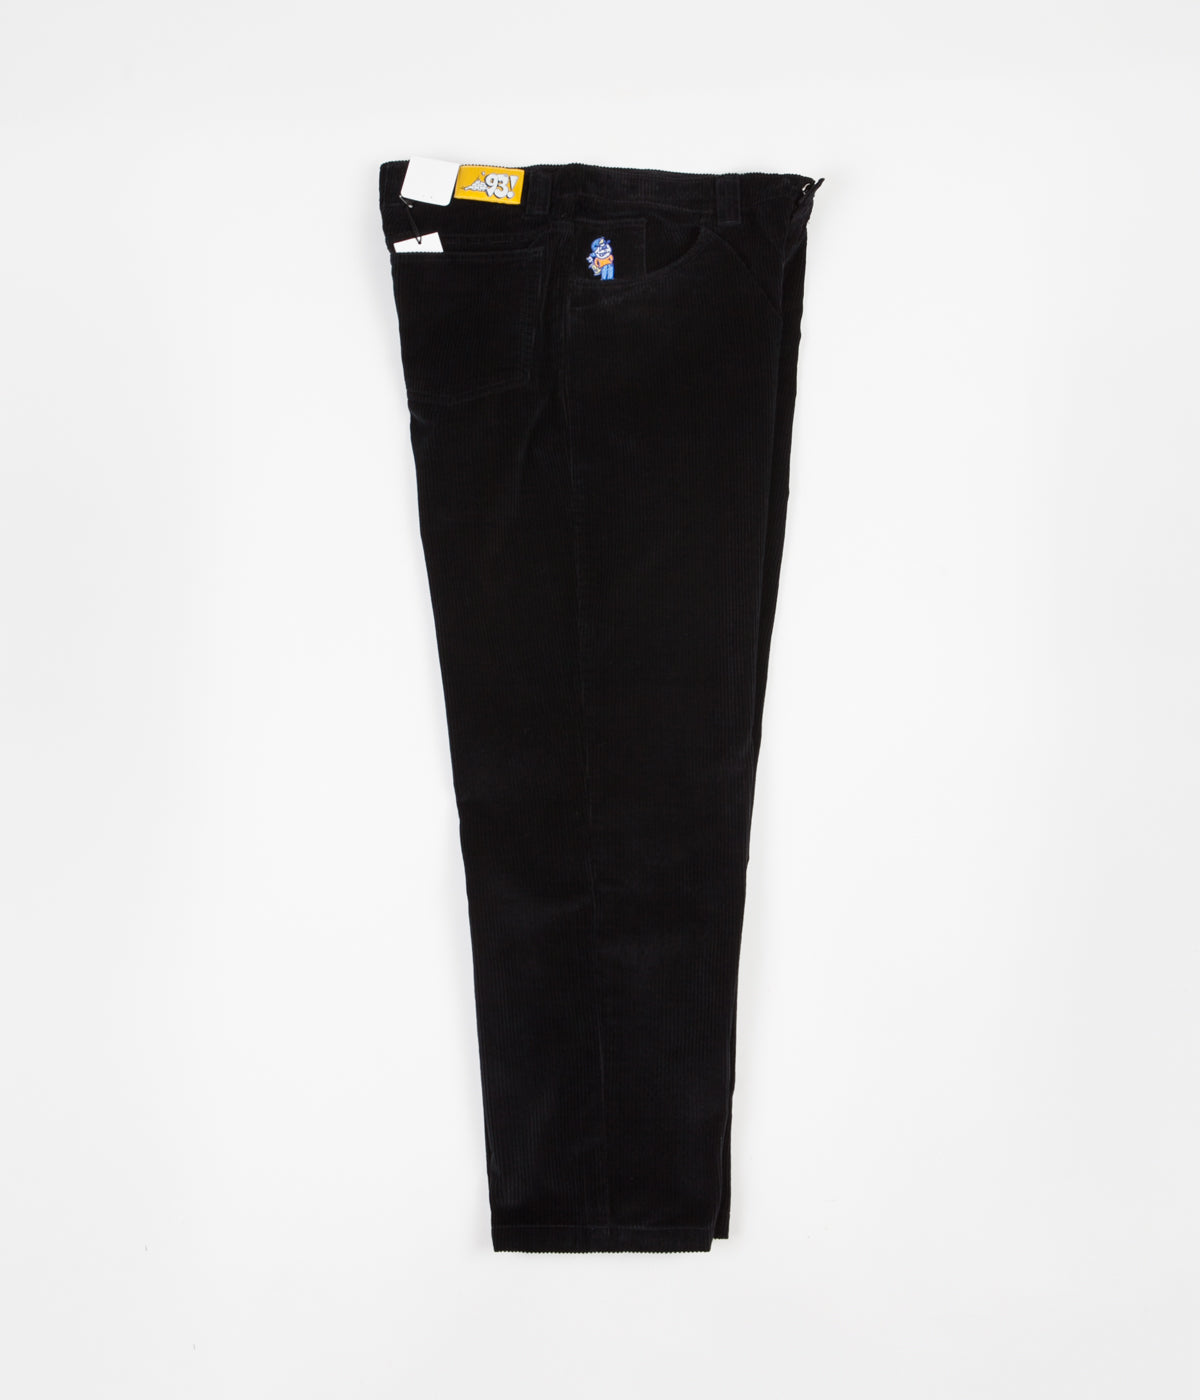 Polar 93 Cord Trousers - Black